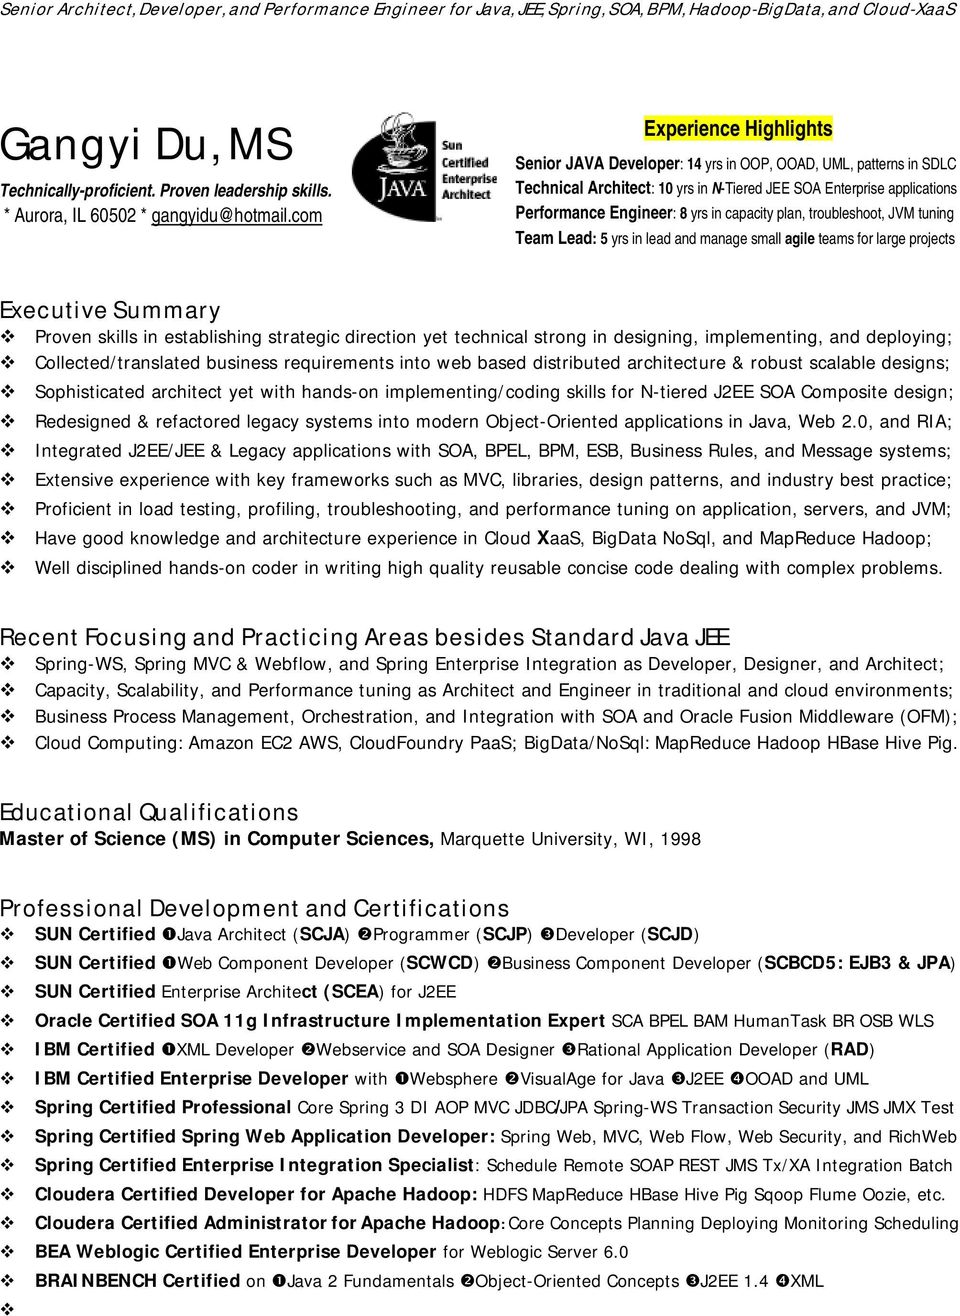 enterprise architect resume sample photo - Hadoop Architect Resume Samples